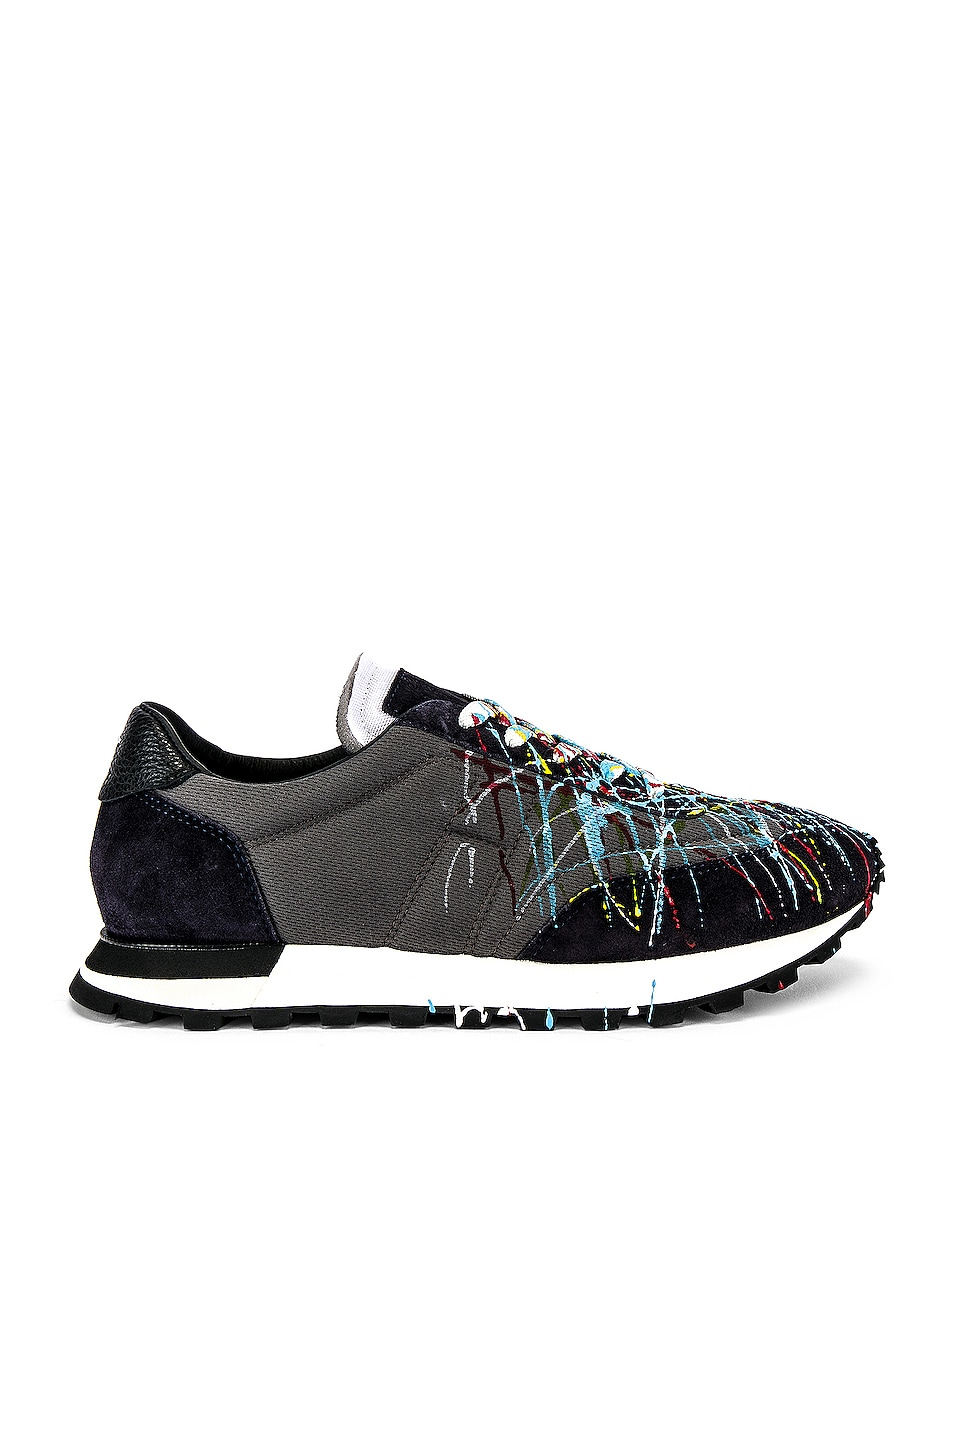 Image 2 of Maison Margiela Painted Runner In Multi in Multi